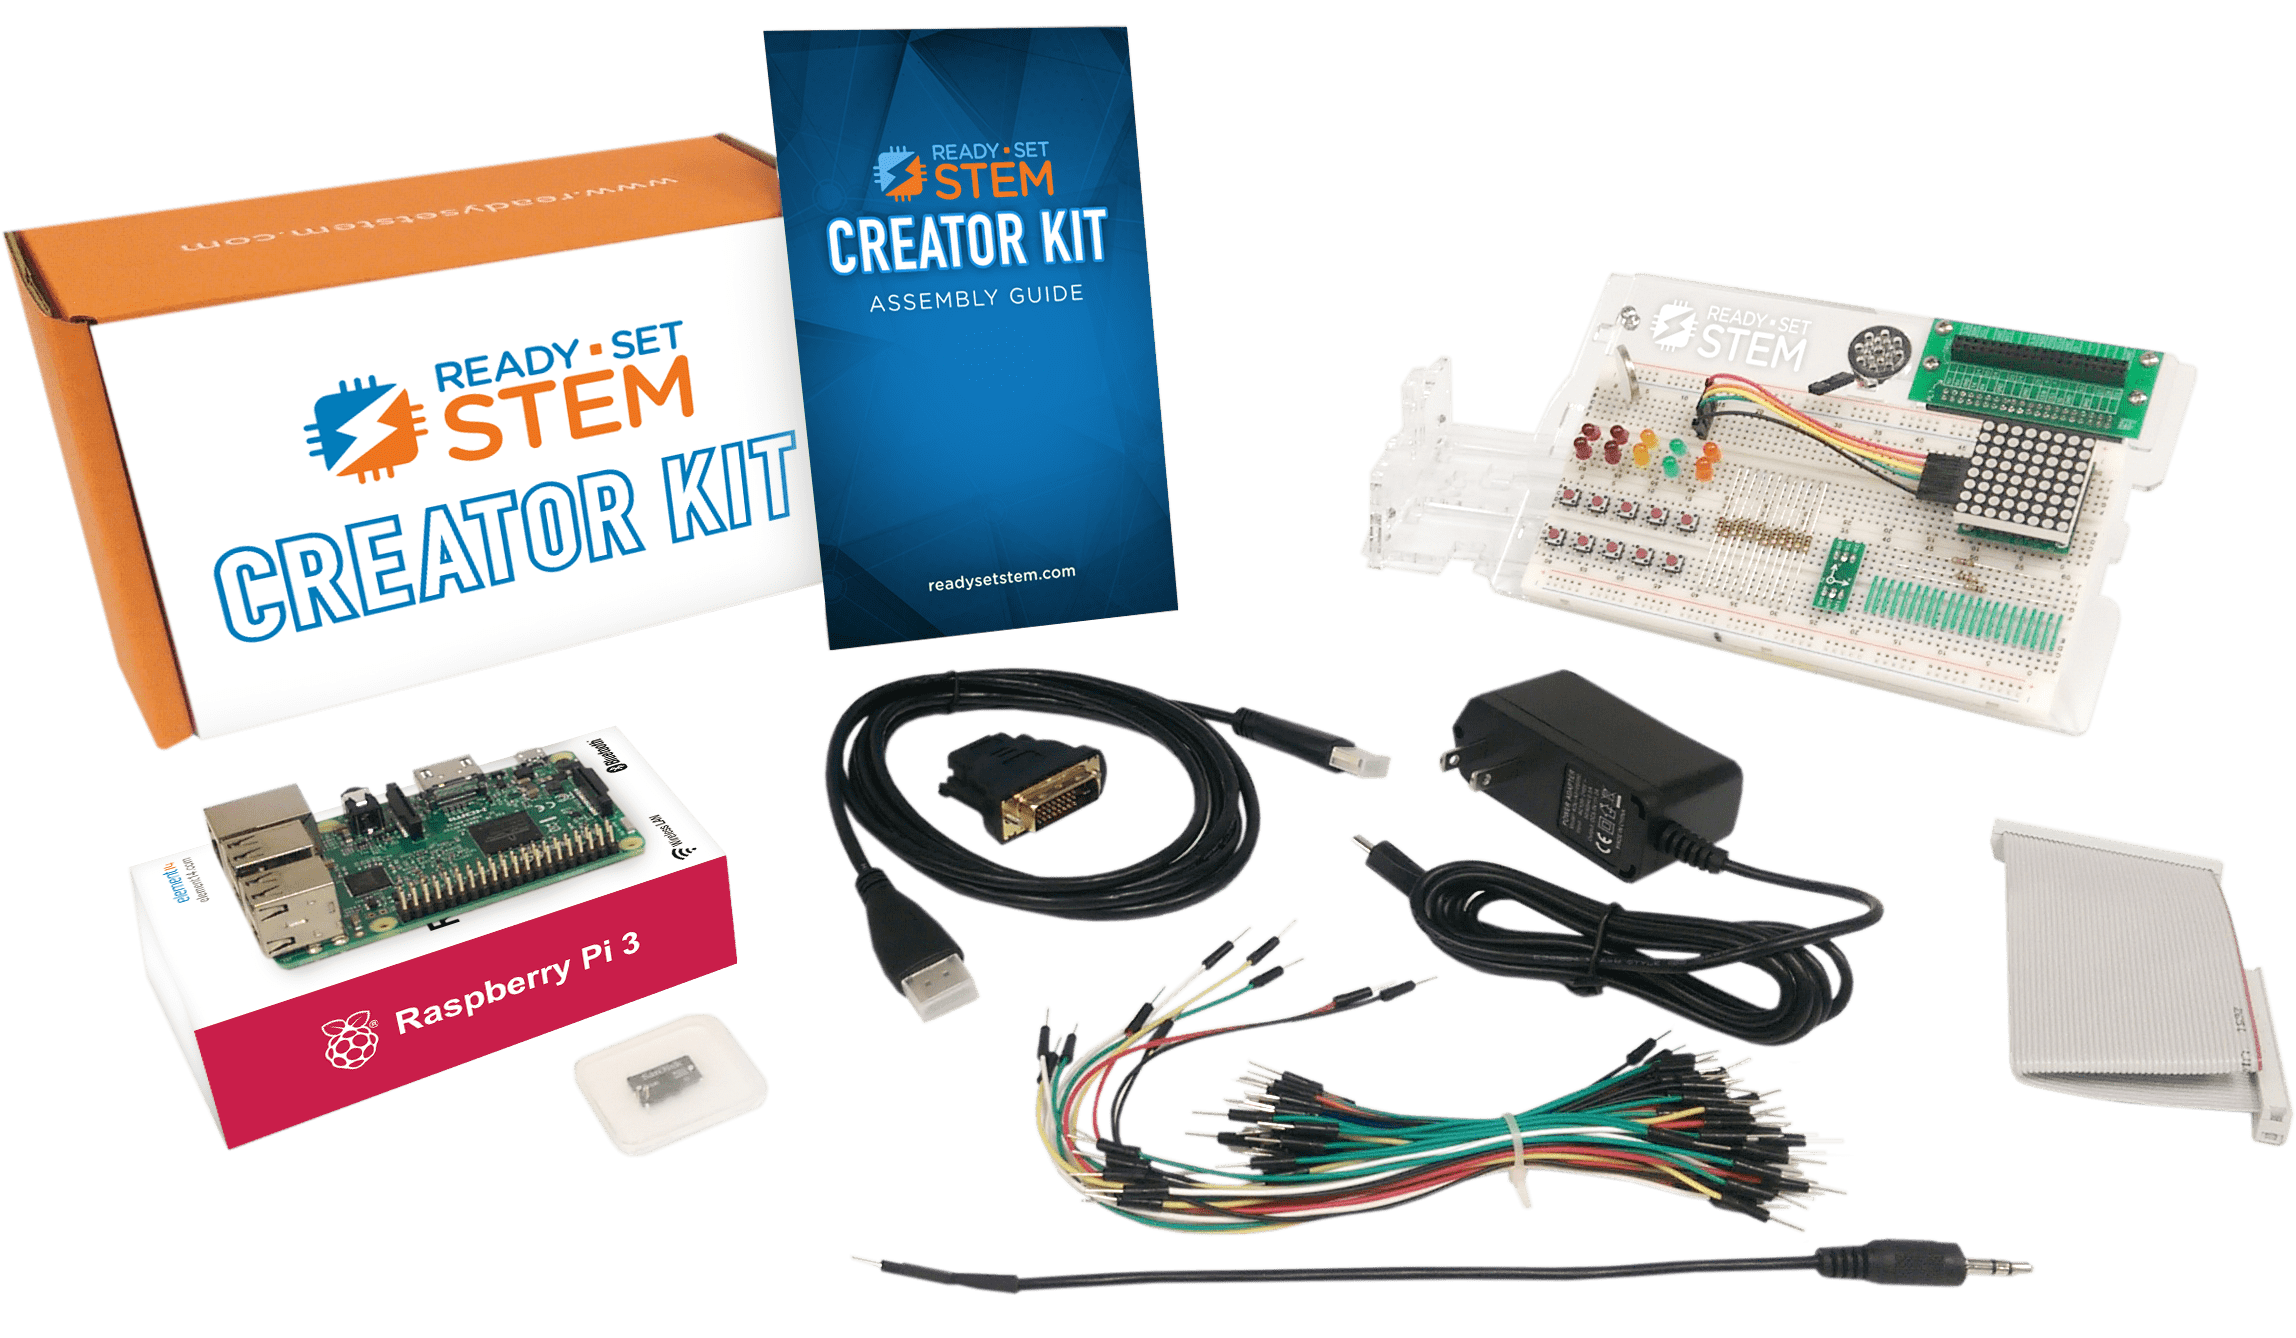 creator-kit-contents